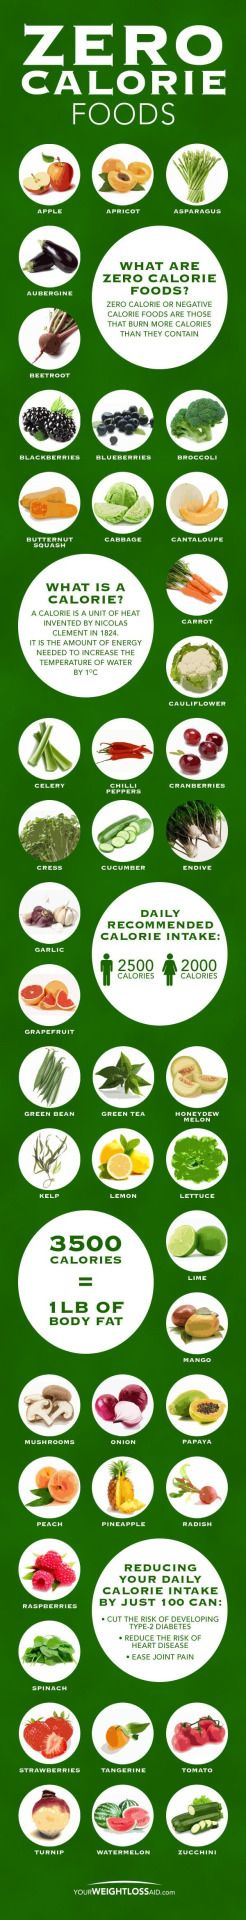 """bikinibodylifestyle: """"Guilt free food! """" But the most important thing to remember is that those calories come from foods rich in vitamins and nutrients..empty calories must be avoided! Eating 2000..."""